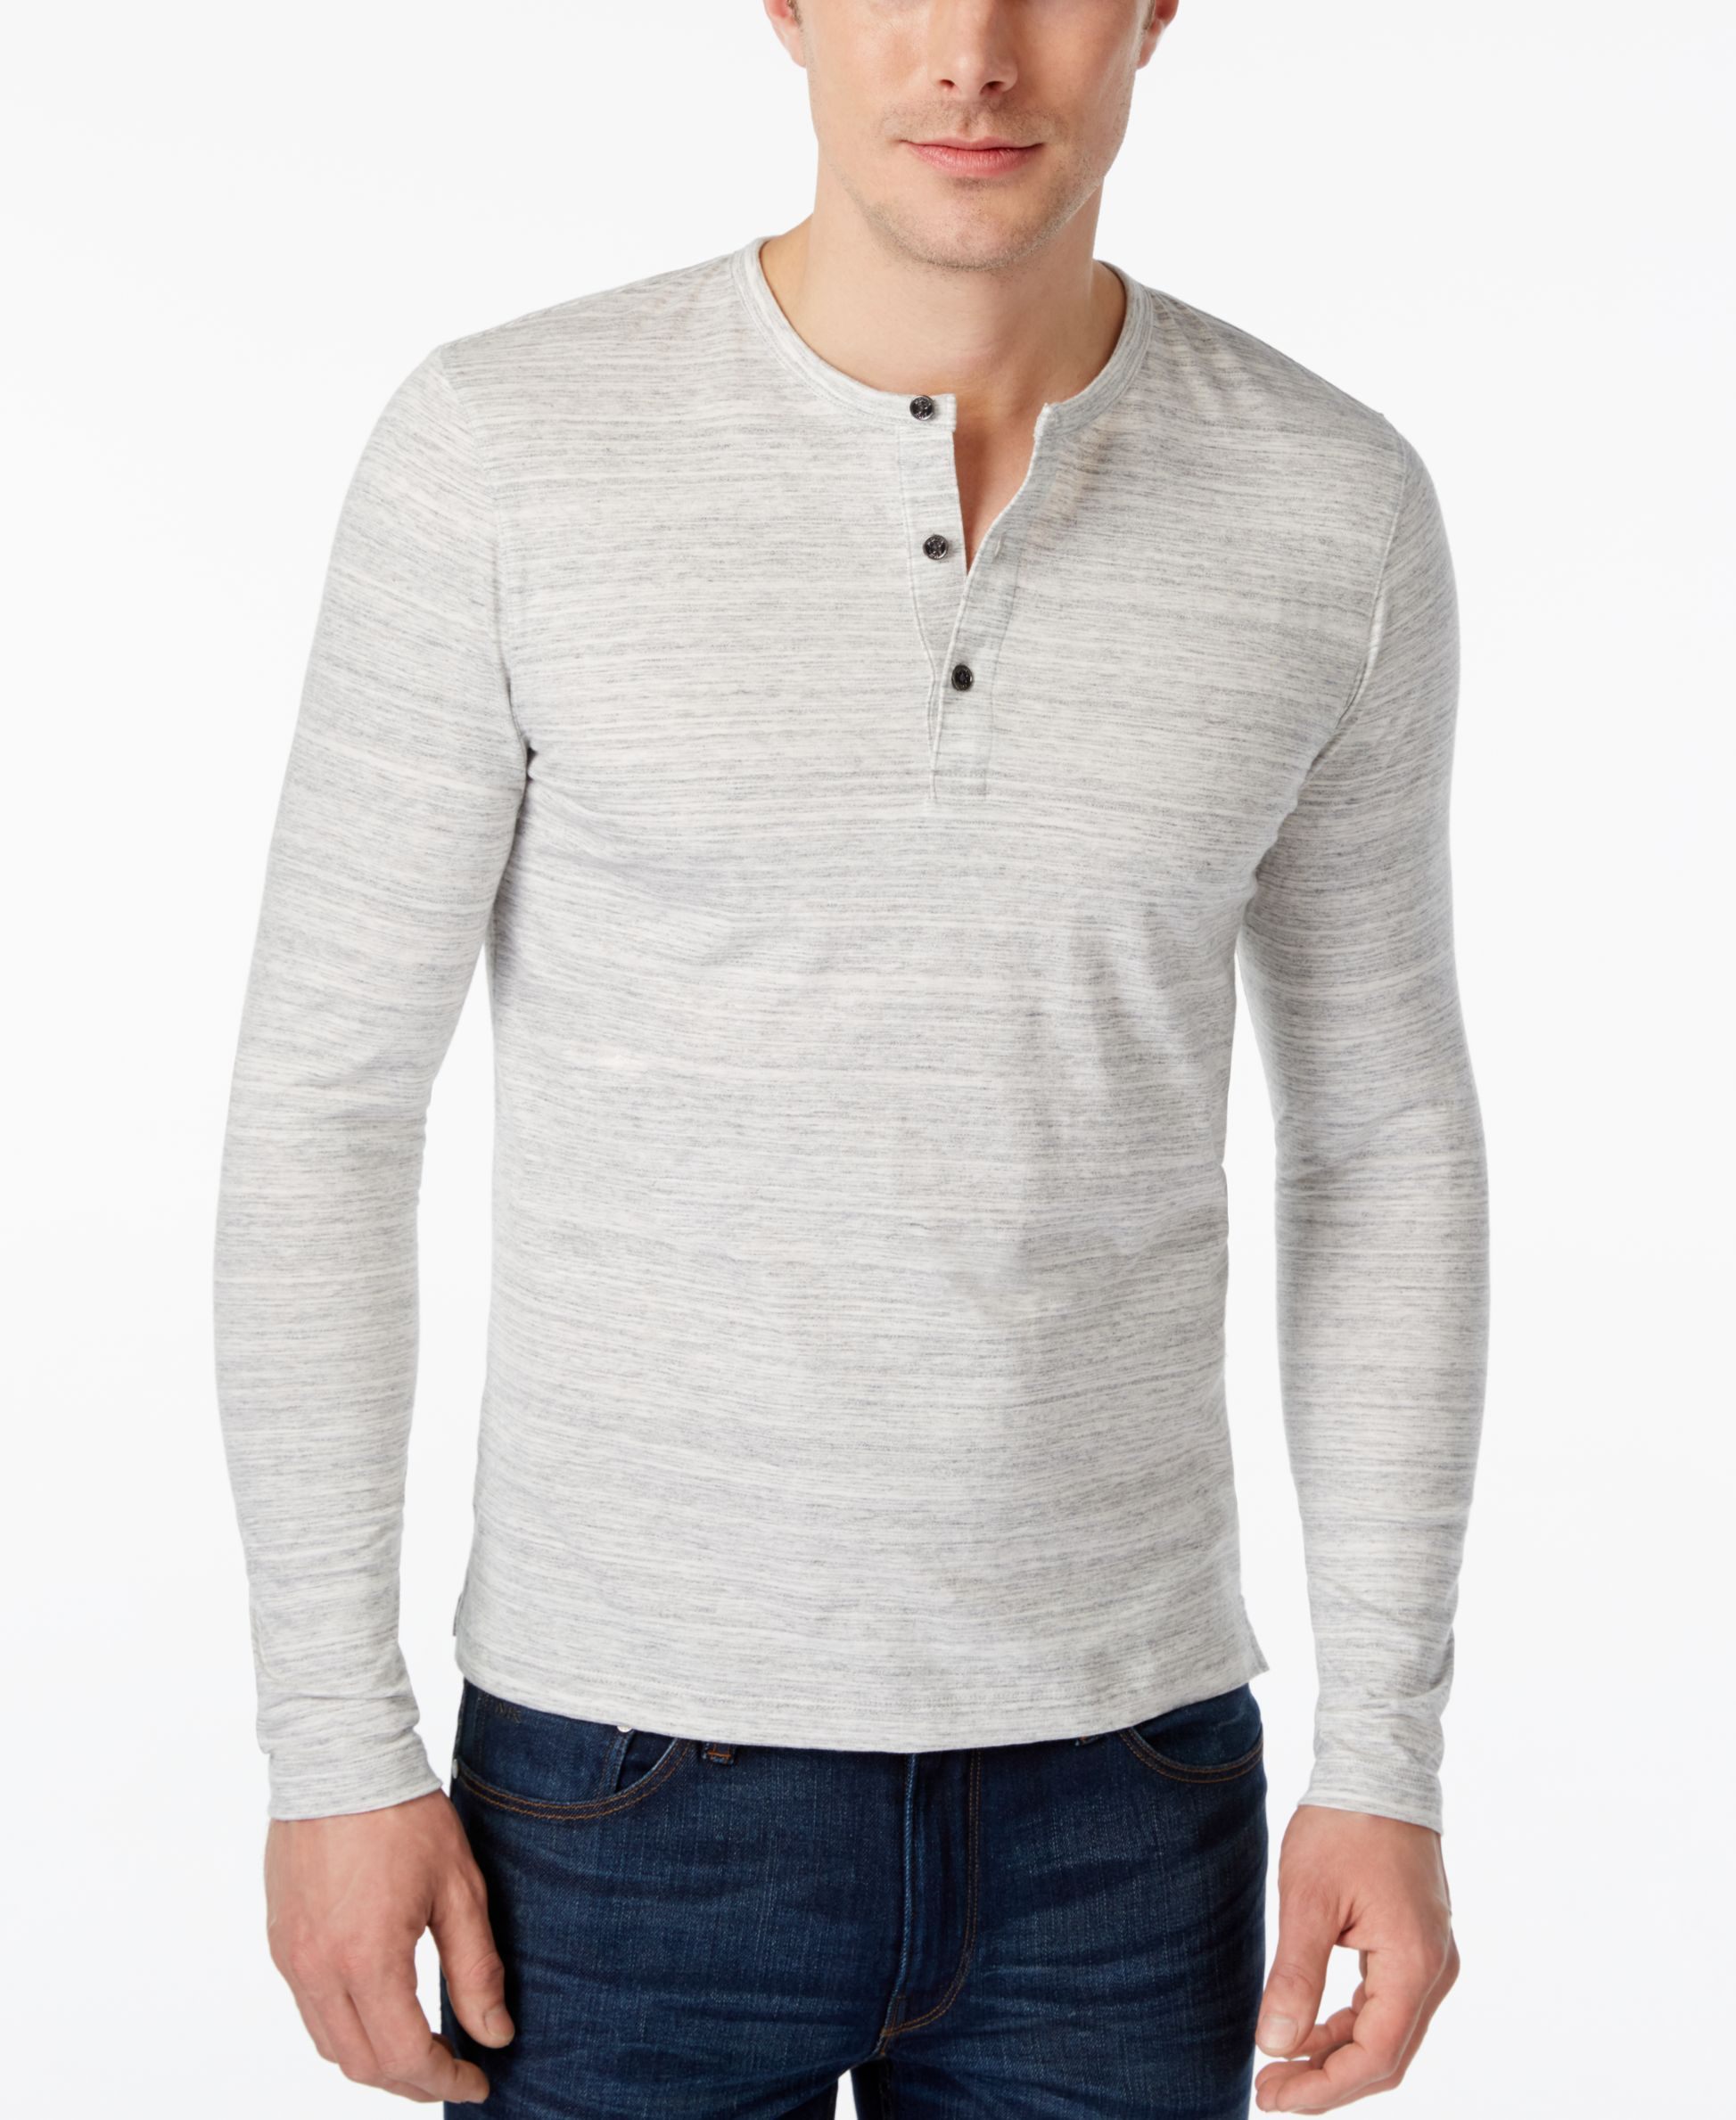 Michael Kors Men's Space Dyed Long-Sleeve Henley